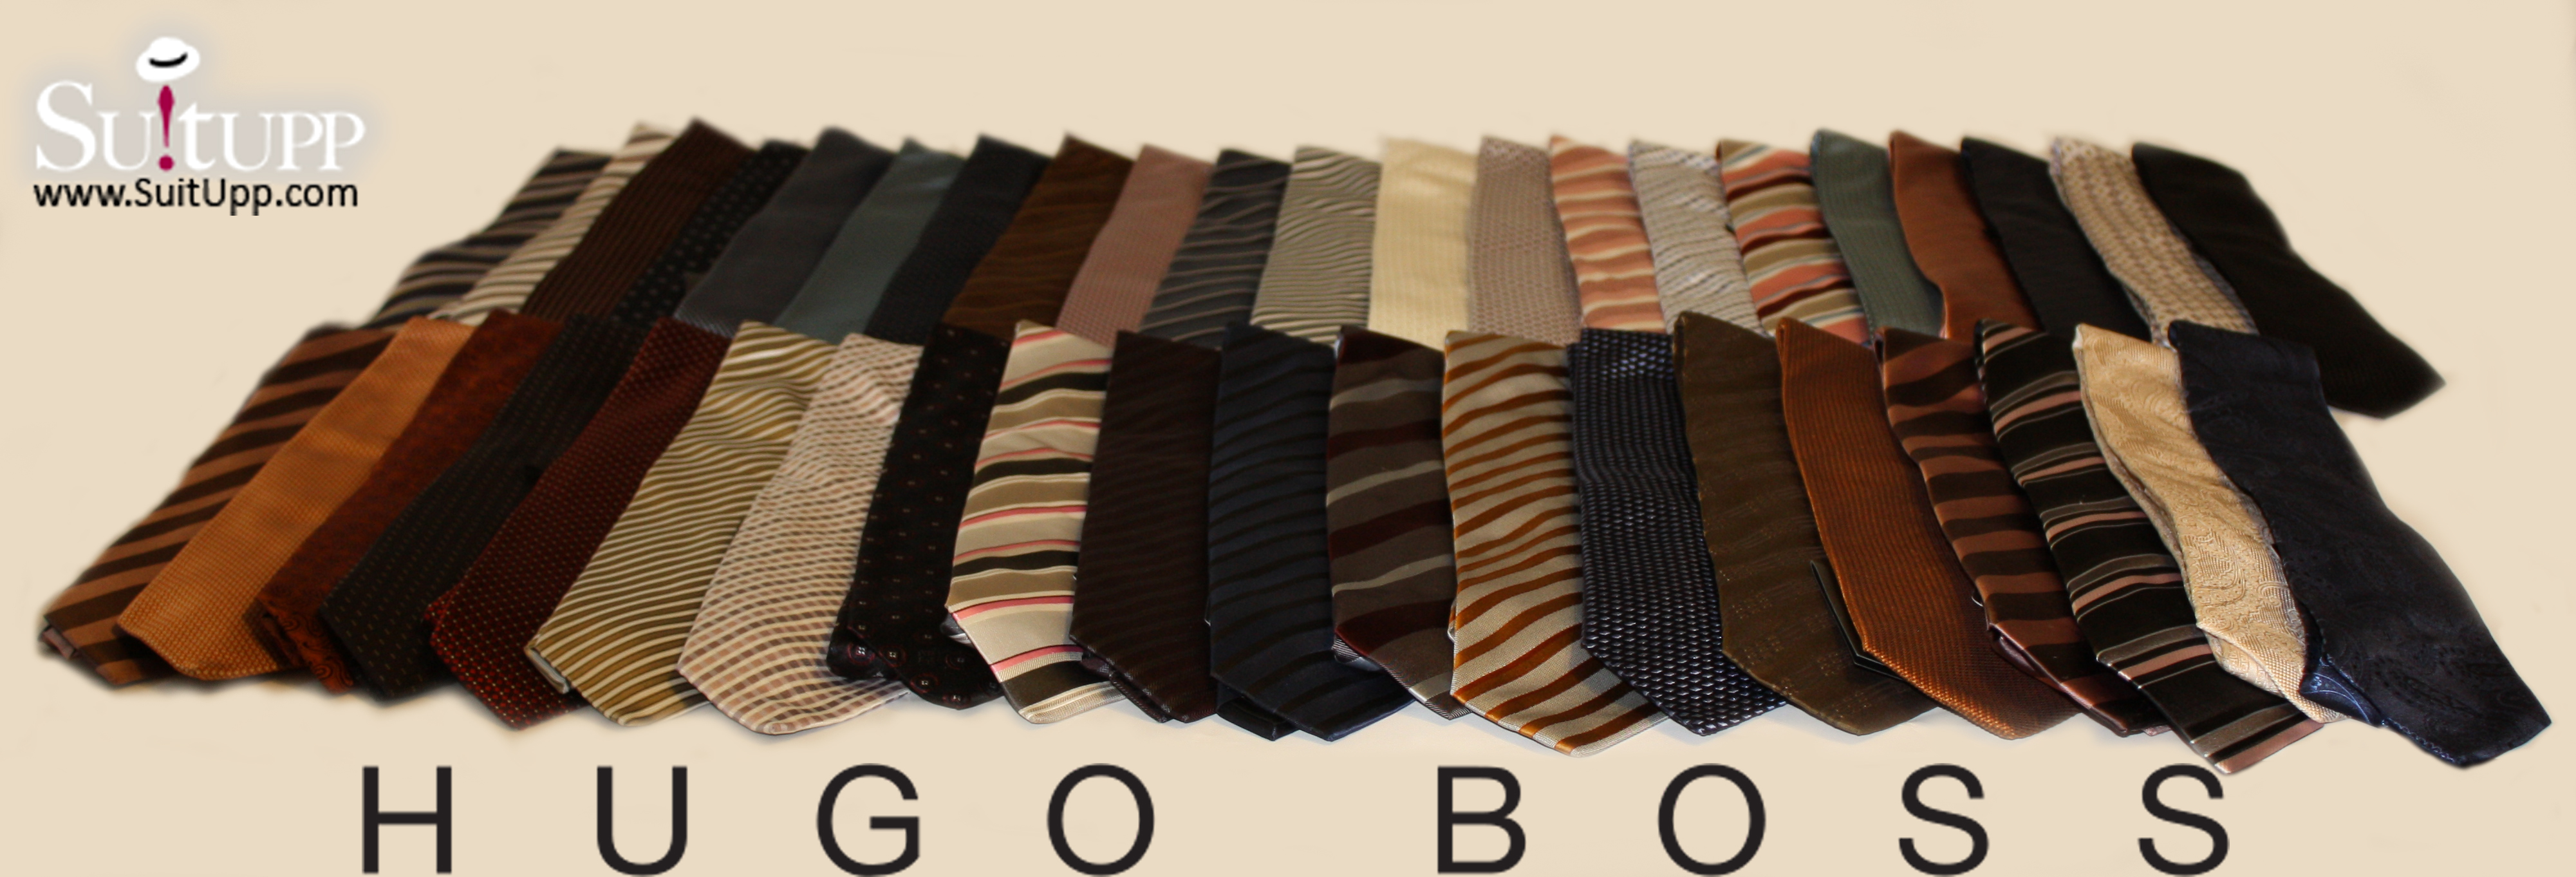 6368f55f73 discount code for hugo boss ties nordstrom gift 2bd52 4b9f6